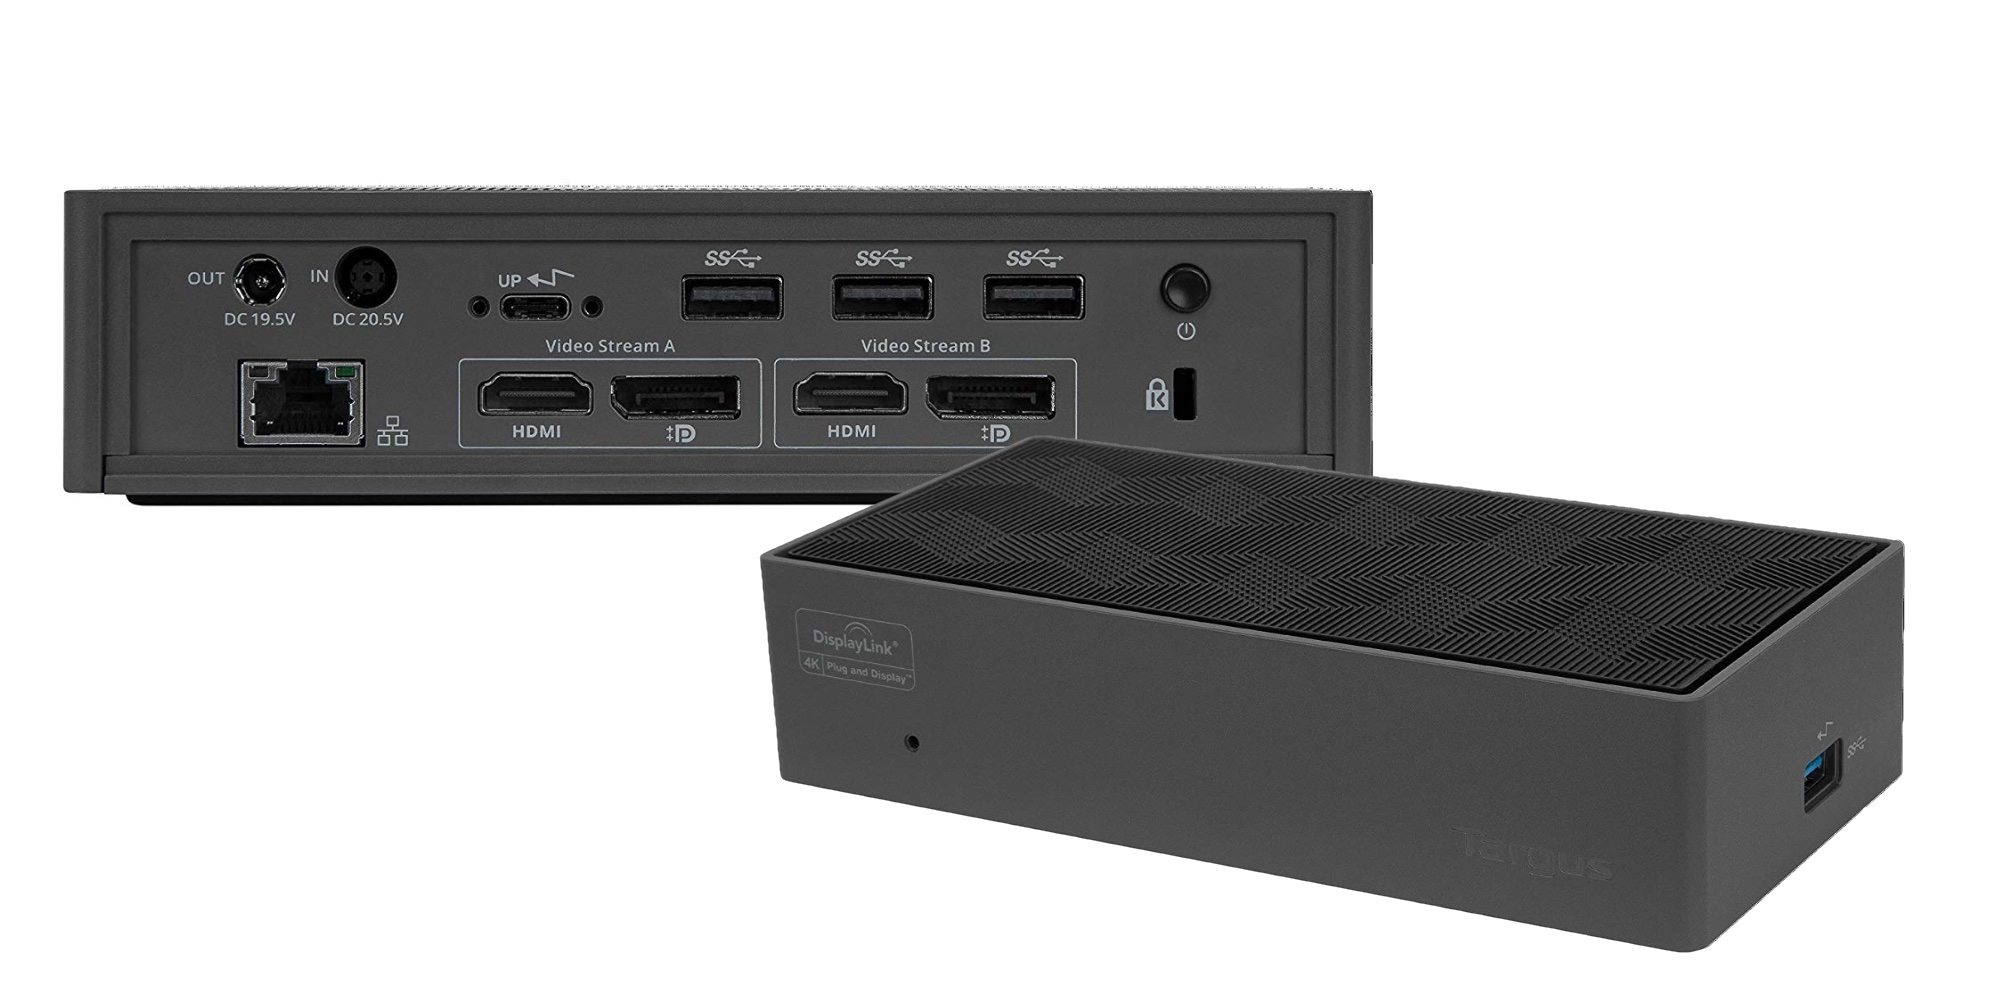 Targus' Thunderbolt 3 Dock can drive two 4K monitors and ...